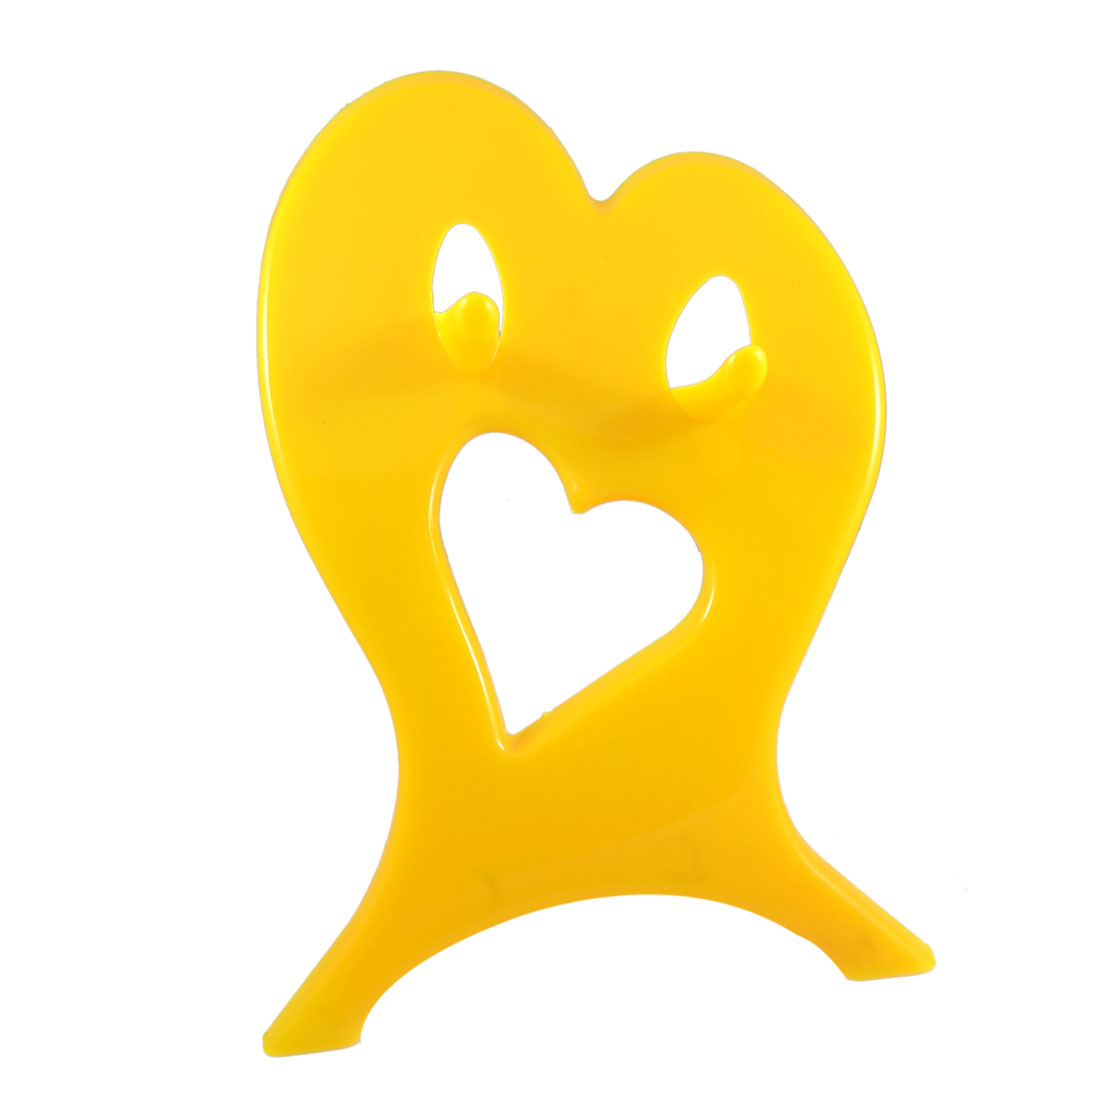 Home Hair Salon Yellow Plastic Blow Dryer Holder Bracket Stand